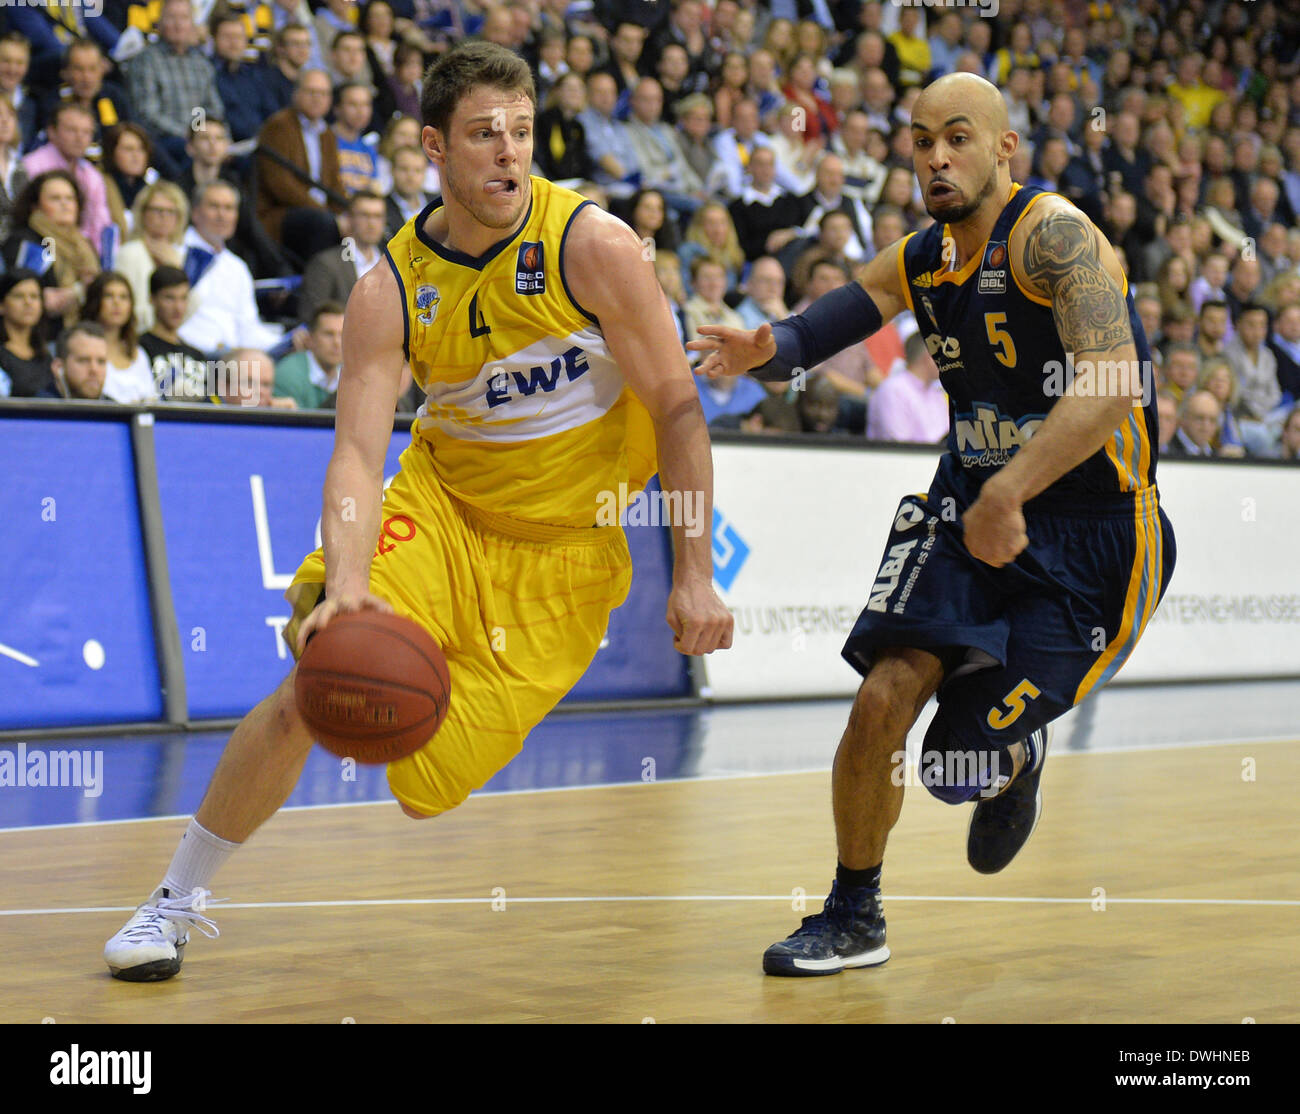 Oldenburg's Chris Kramer (L) vies for the ball with Berlin's David Logen during the German Bundesliga basketball match between EWE Baskets Oldenburg and ALBA Berlin at EWE Arena in Oldenburg, Germany, 08 March 2014. Photo: Carmen Jaspersen - Stock Image